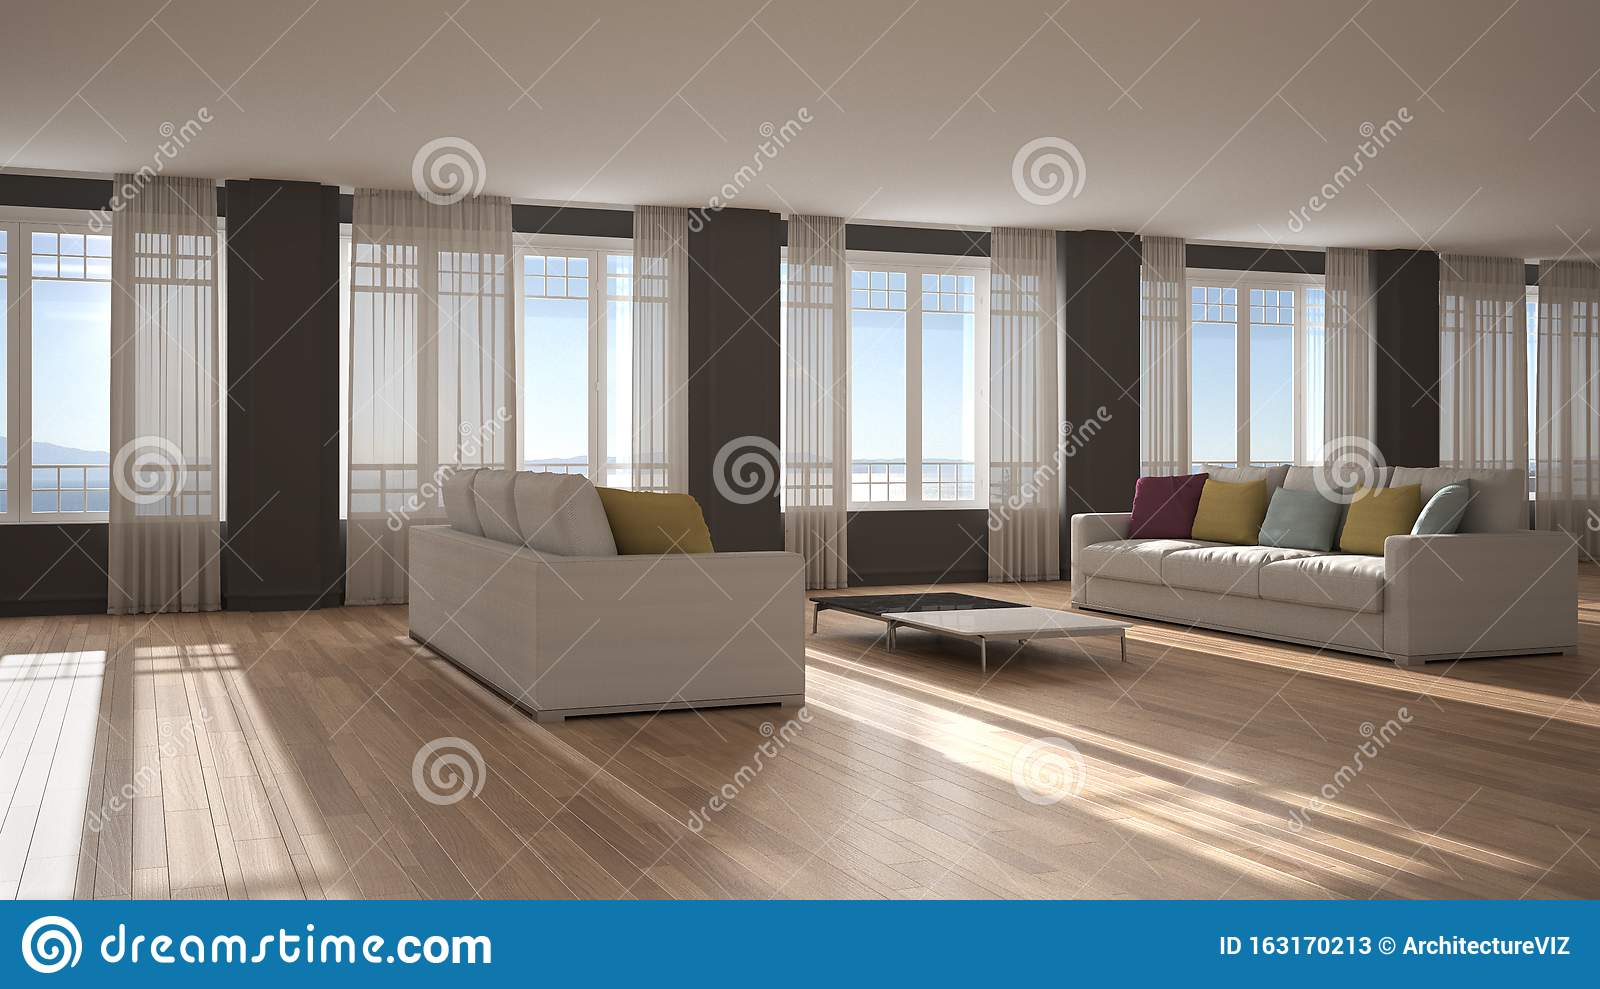 Open Space With Sofa Interior Design Modern Living Room Lounge With Big Panoramic Windows With Curtains And Sea View Parquet Stock Illustration Illustration Of Design Lounge 163170213